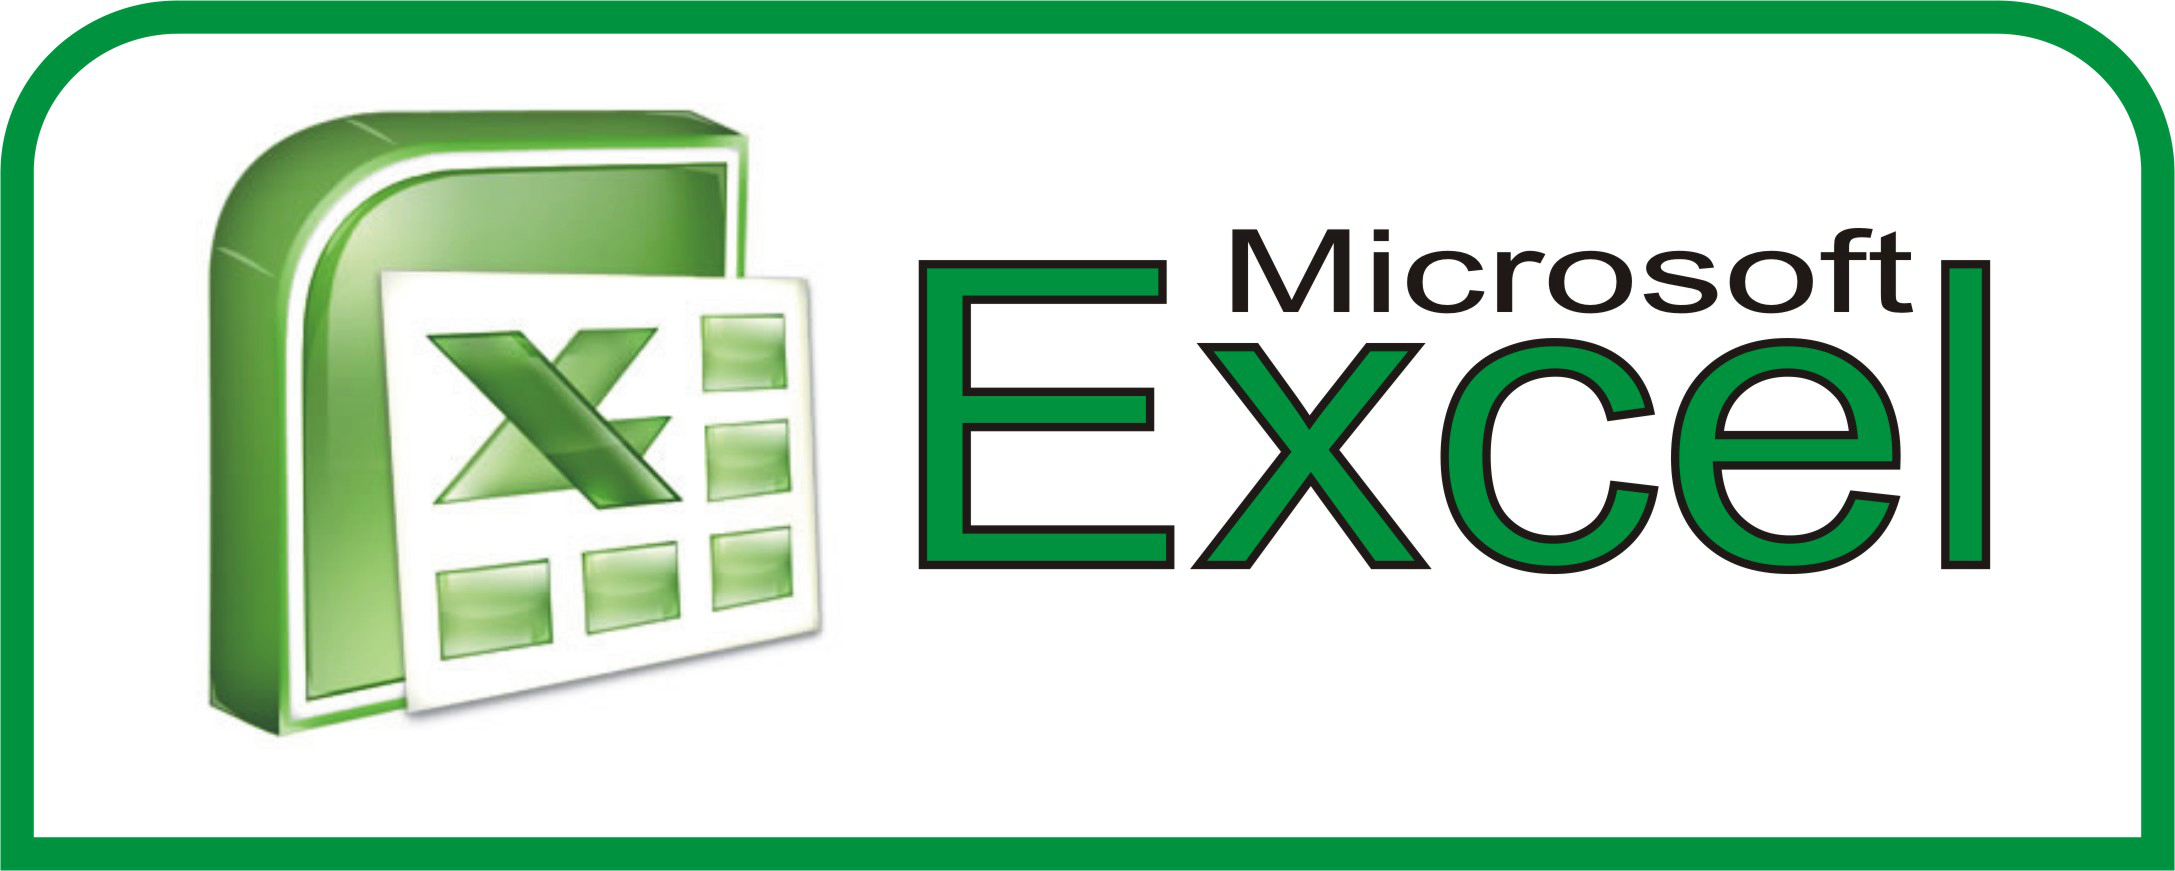 Ediblewildsus  Nice  Excel Shortcuts You Probably Didnt Know About  Techdissected With Engaging Freeze Frame Excel Besides Excel Payroll Calculator Furthermore Sort Duplicates In Excel With Amazing How To Use Rank In Excel Also Calculate Percentile In Excel In Addition How To Split Data In Excel And Edate Excel As Well As If Na Excel Additionally Deduplicate Excel From Techdissectedcom With Ediblewildsus  Engaging  Excel Shortcuts You Probably Didnt Know About  Techdissected With Amazing Freeze Frame Excel Besides Excel Payroll Calculator Furthermore Sort Duplicates In Excel And Nice How To Use Rank In Excel Also Calculate Percentile In Excel In Addition How To Split Data In Excel From Techdissectedcom